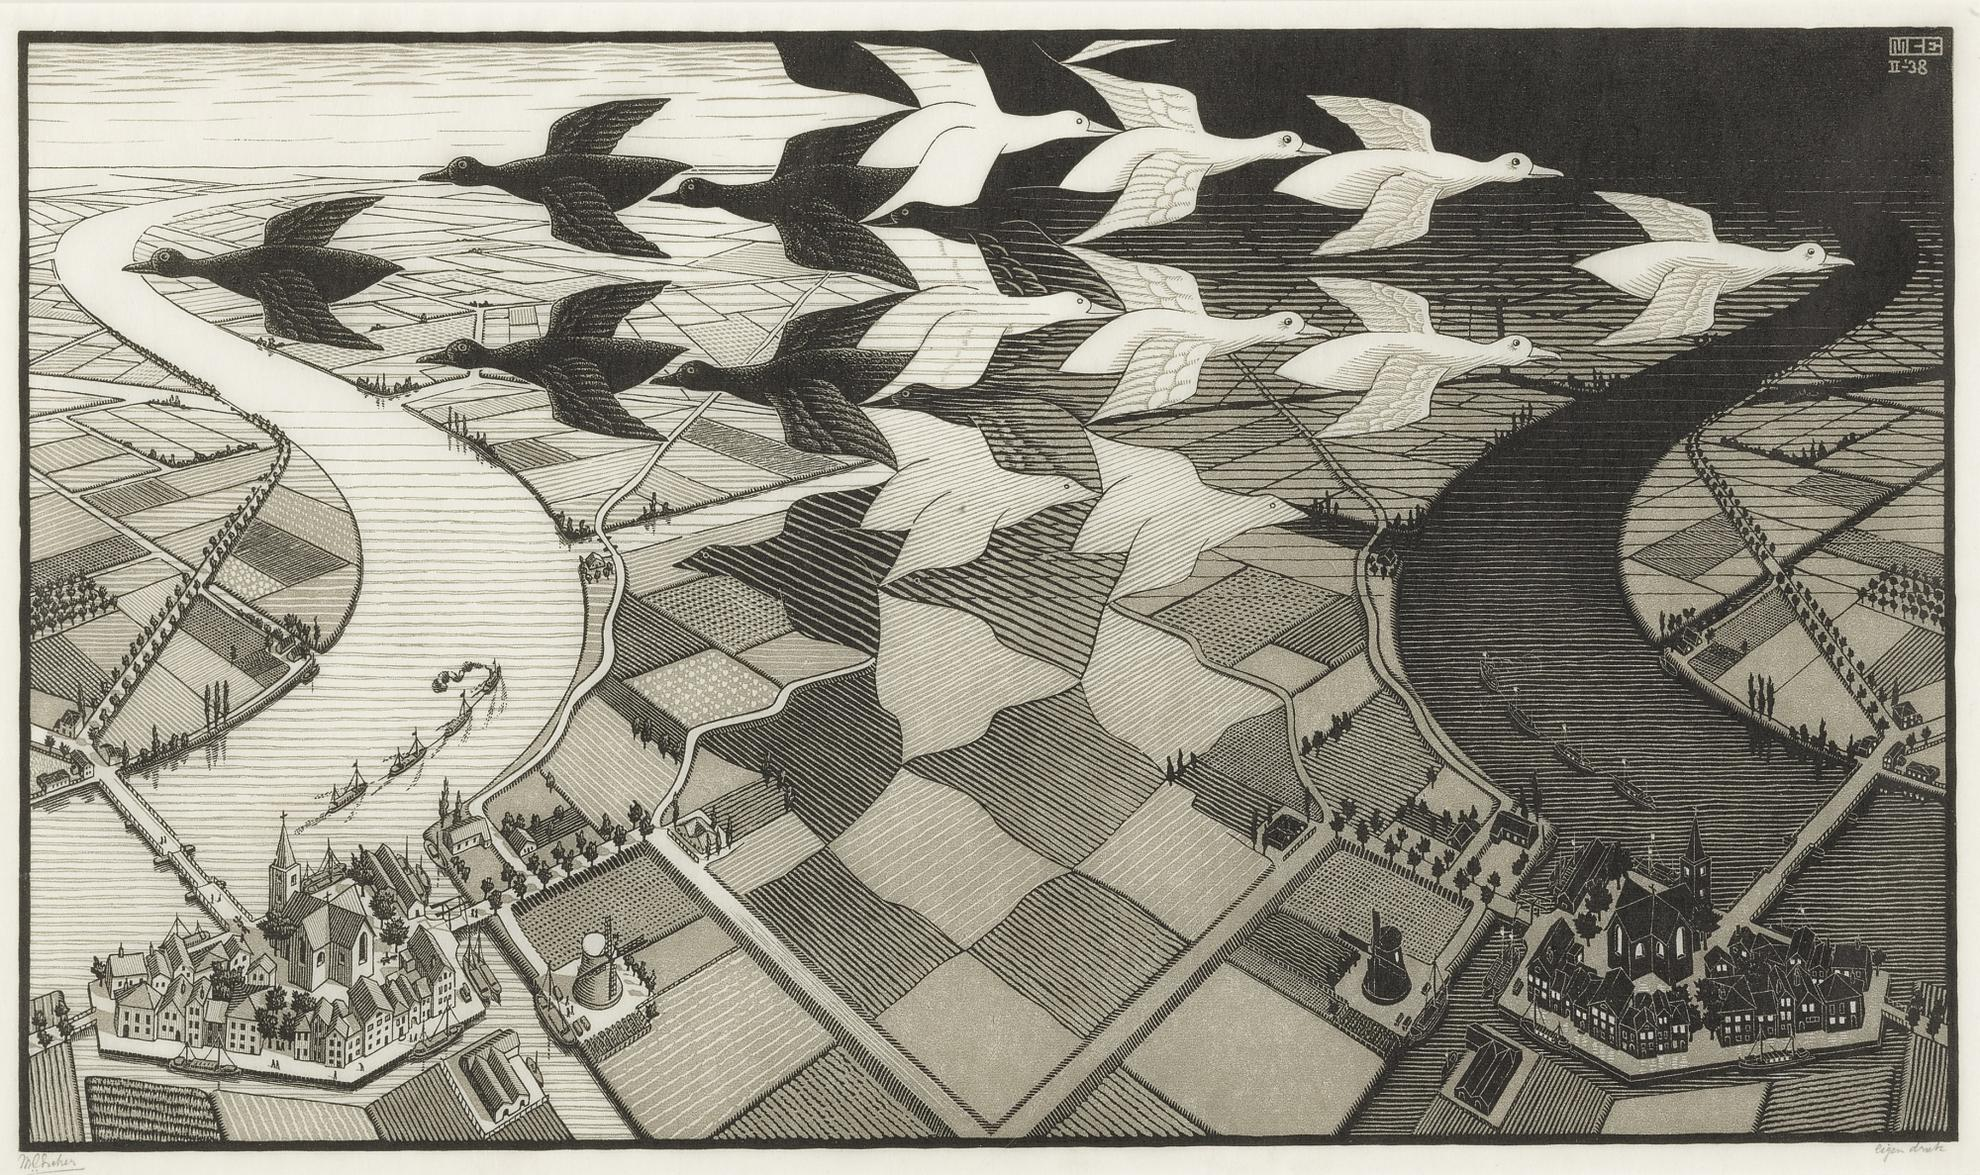 Maurits Cornelis Escher-Day And Night (B./K./L./W 303)-1938